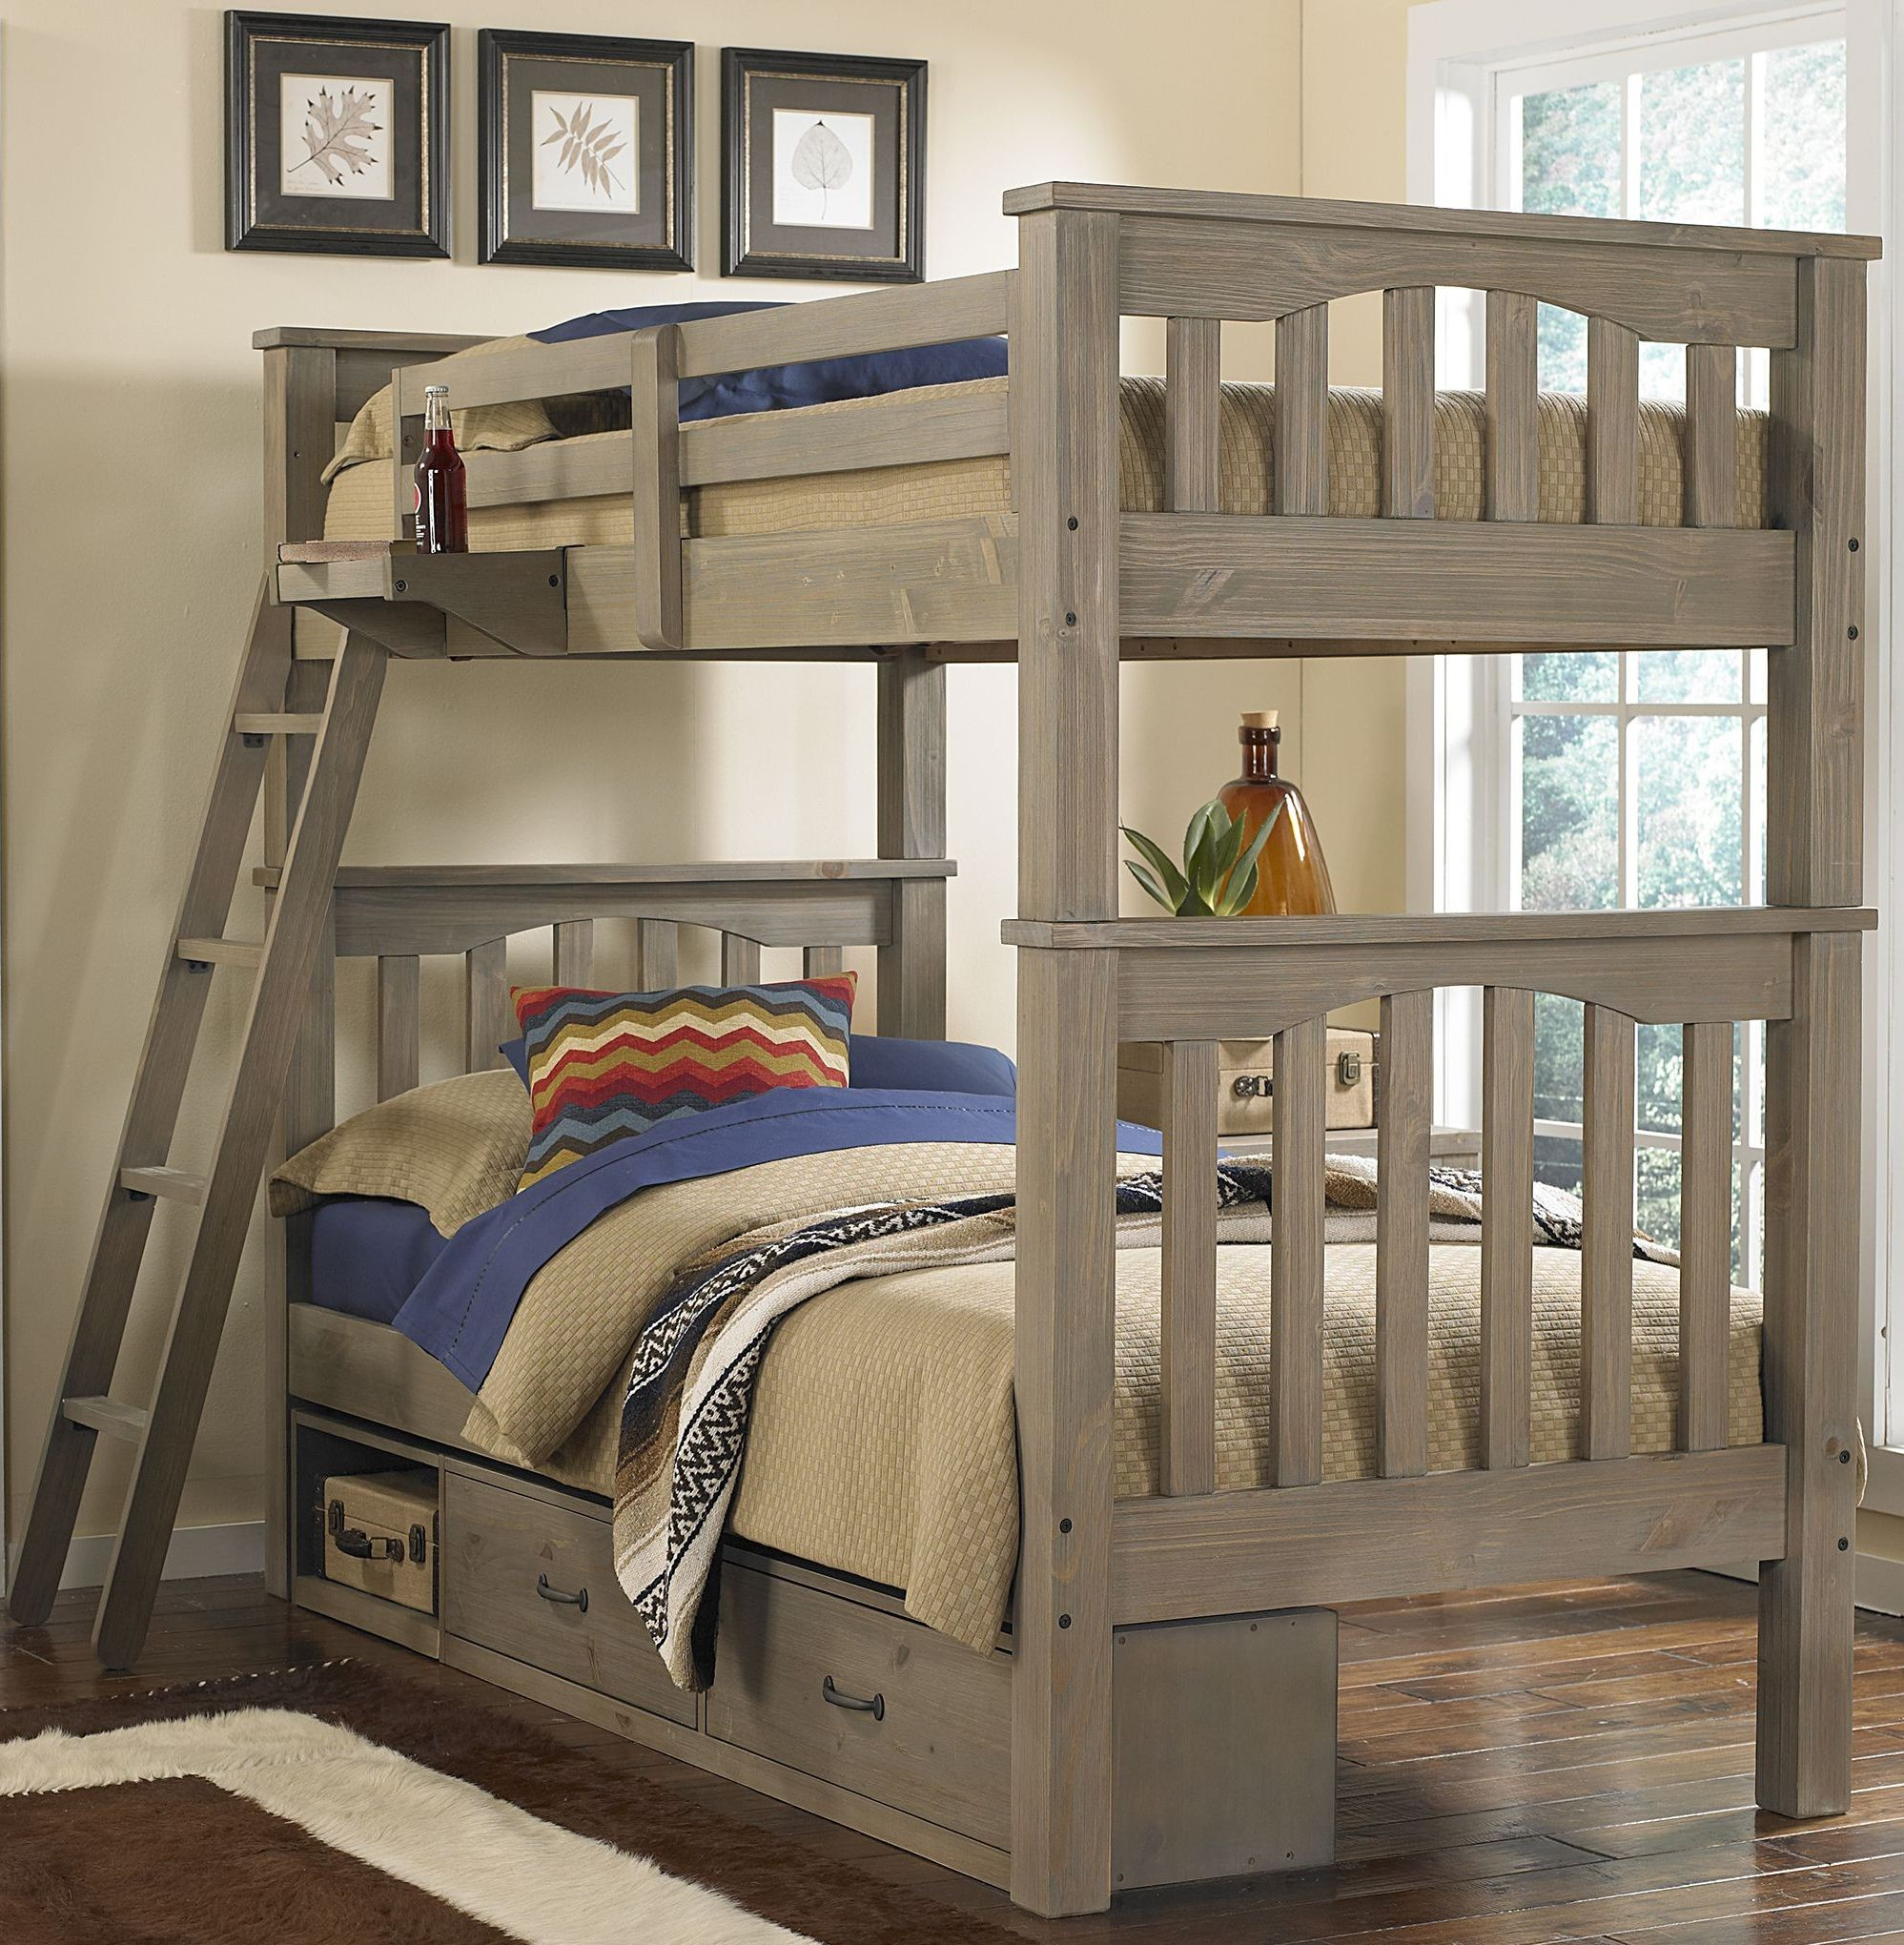 Boat Bed With Trundle And Toy Box Storage: Highlands Harper Driftwood Twin Over Twin Storage Bunk Bed